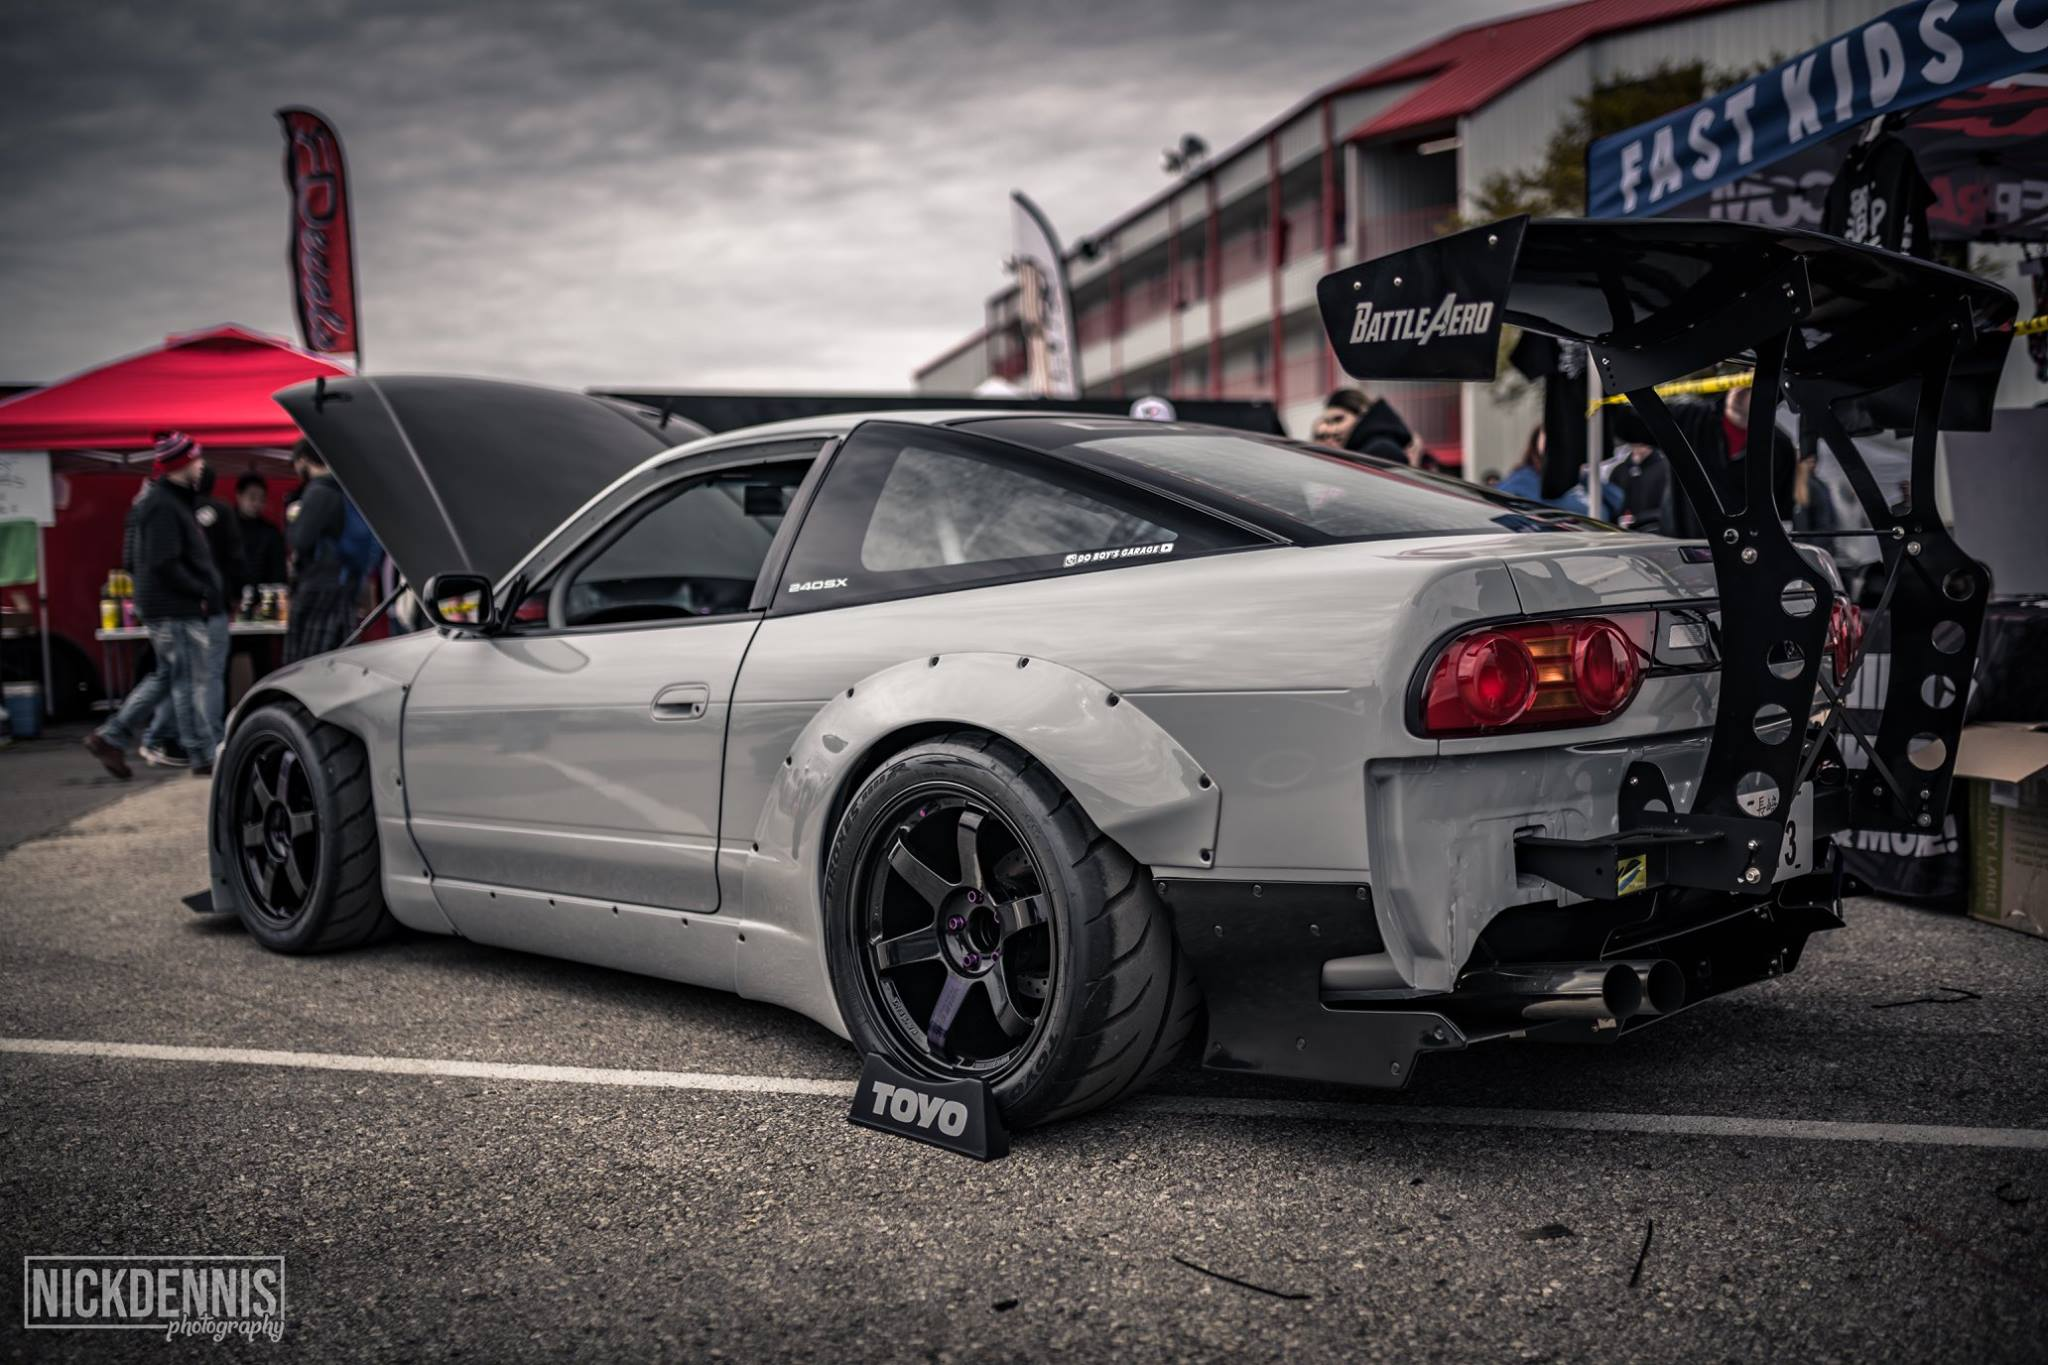 0501 Anthony Do 1993 Nissan 240SX PASMAG TBGLIVE